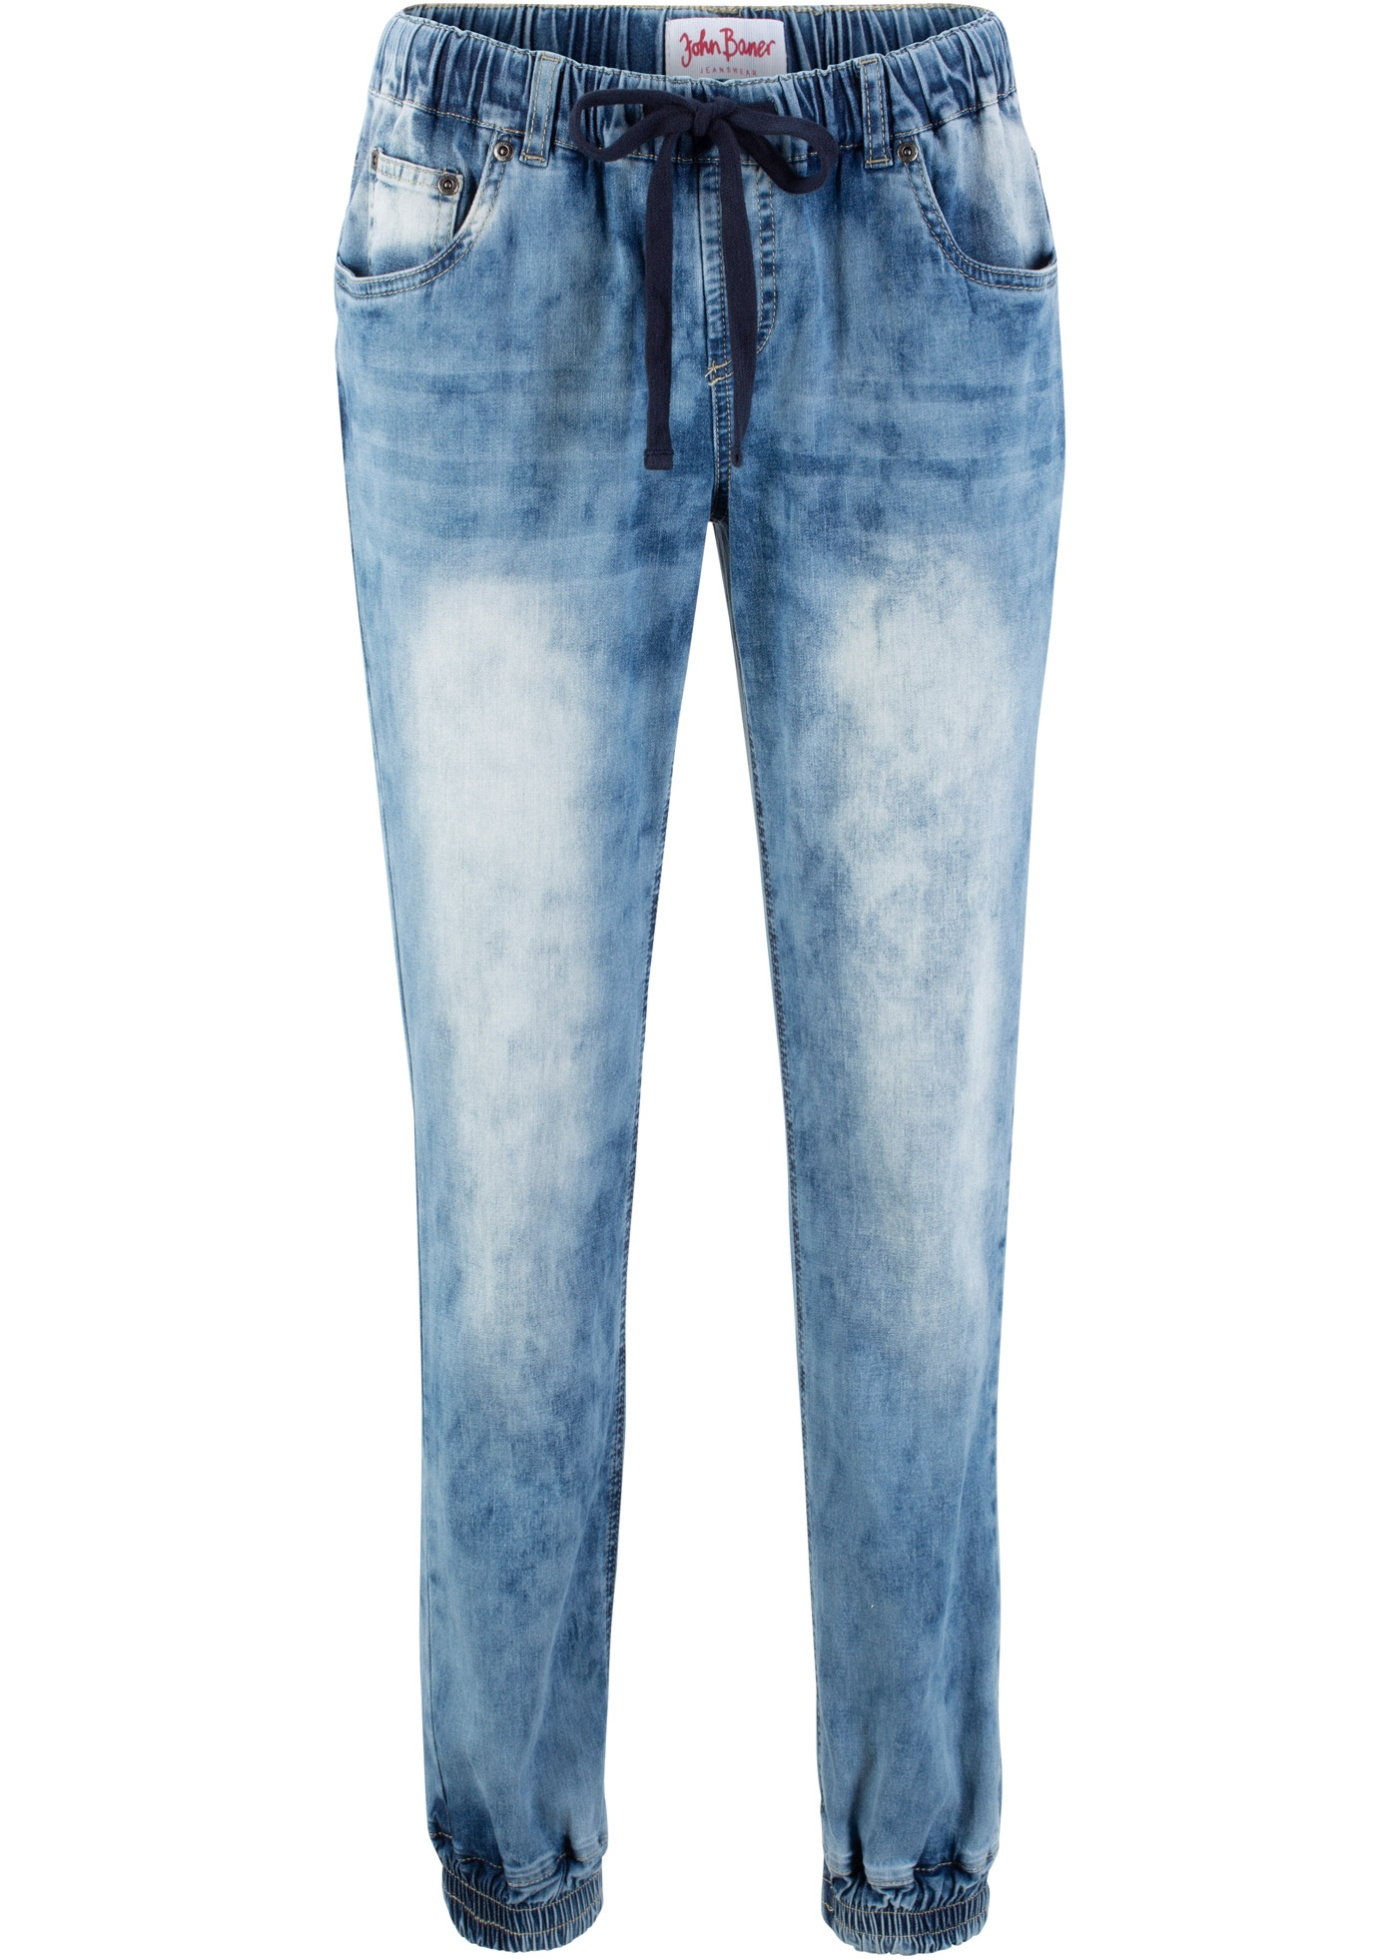 Pull on-stretch-Jeans, Comfort